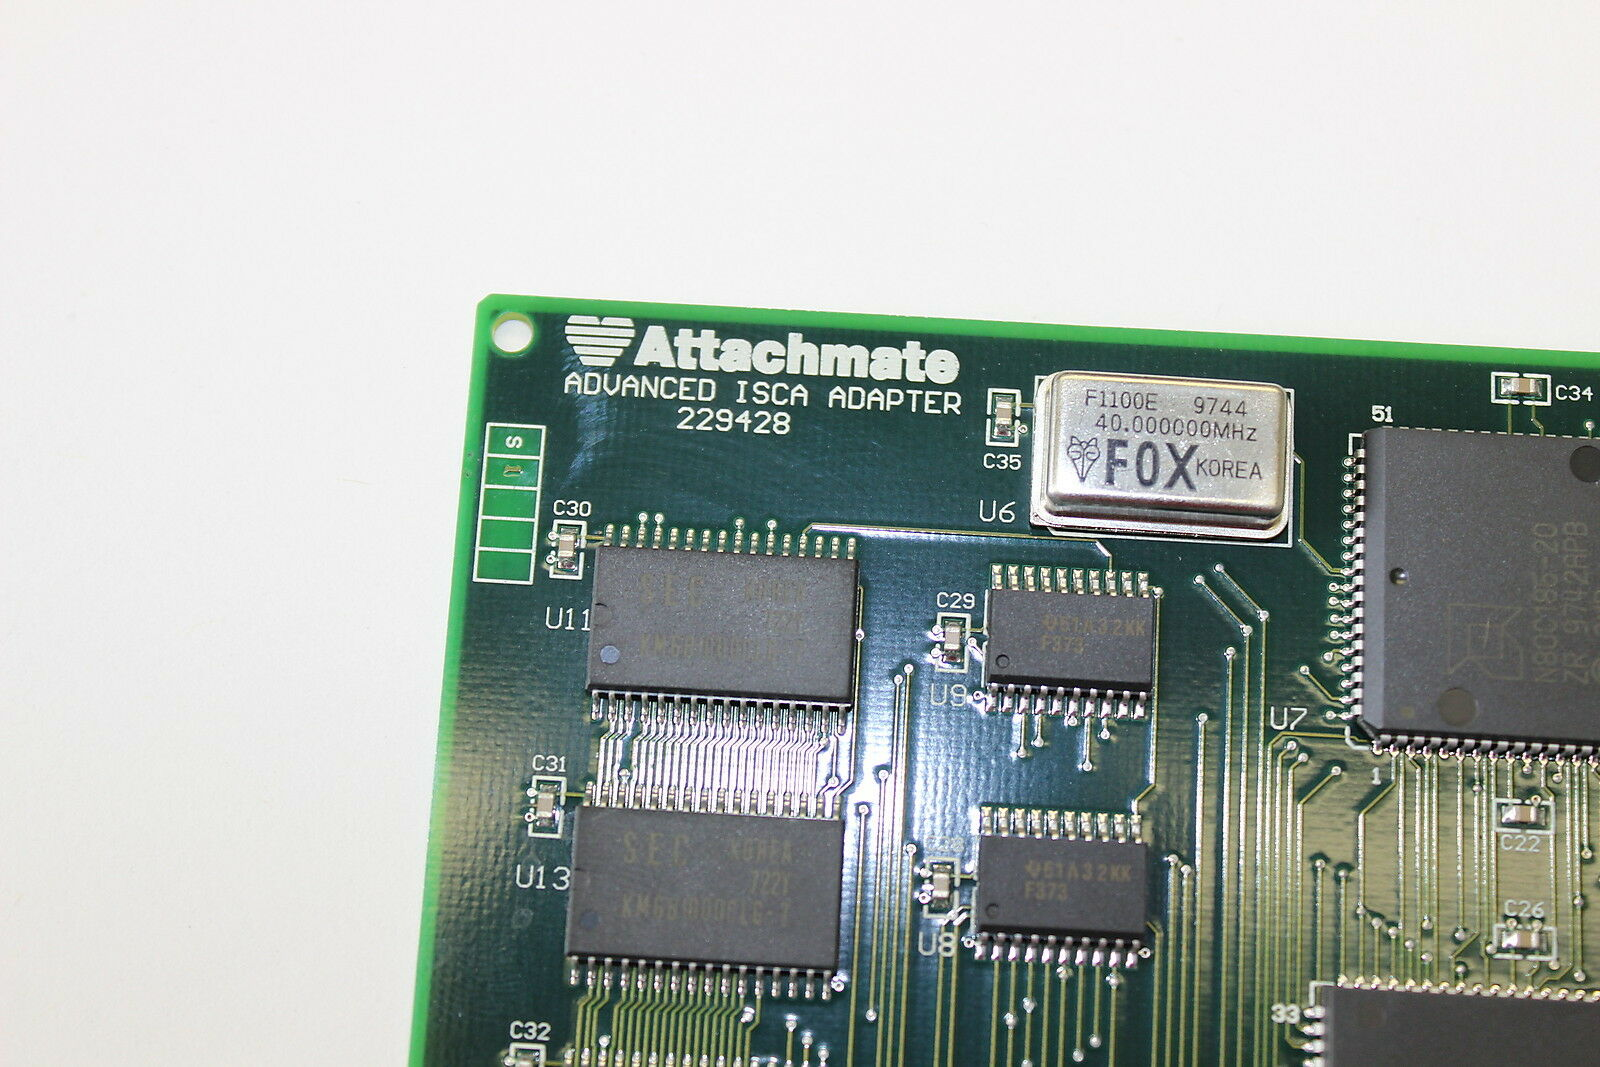 Attachmate 240879 Advanced ISCA//PCI Adapter With Warranty